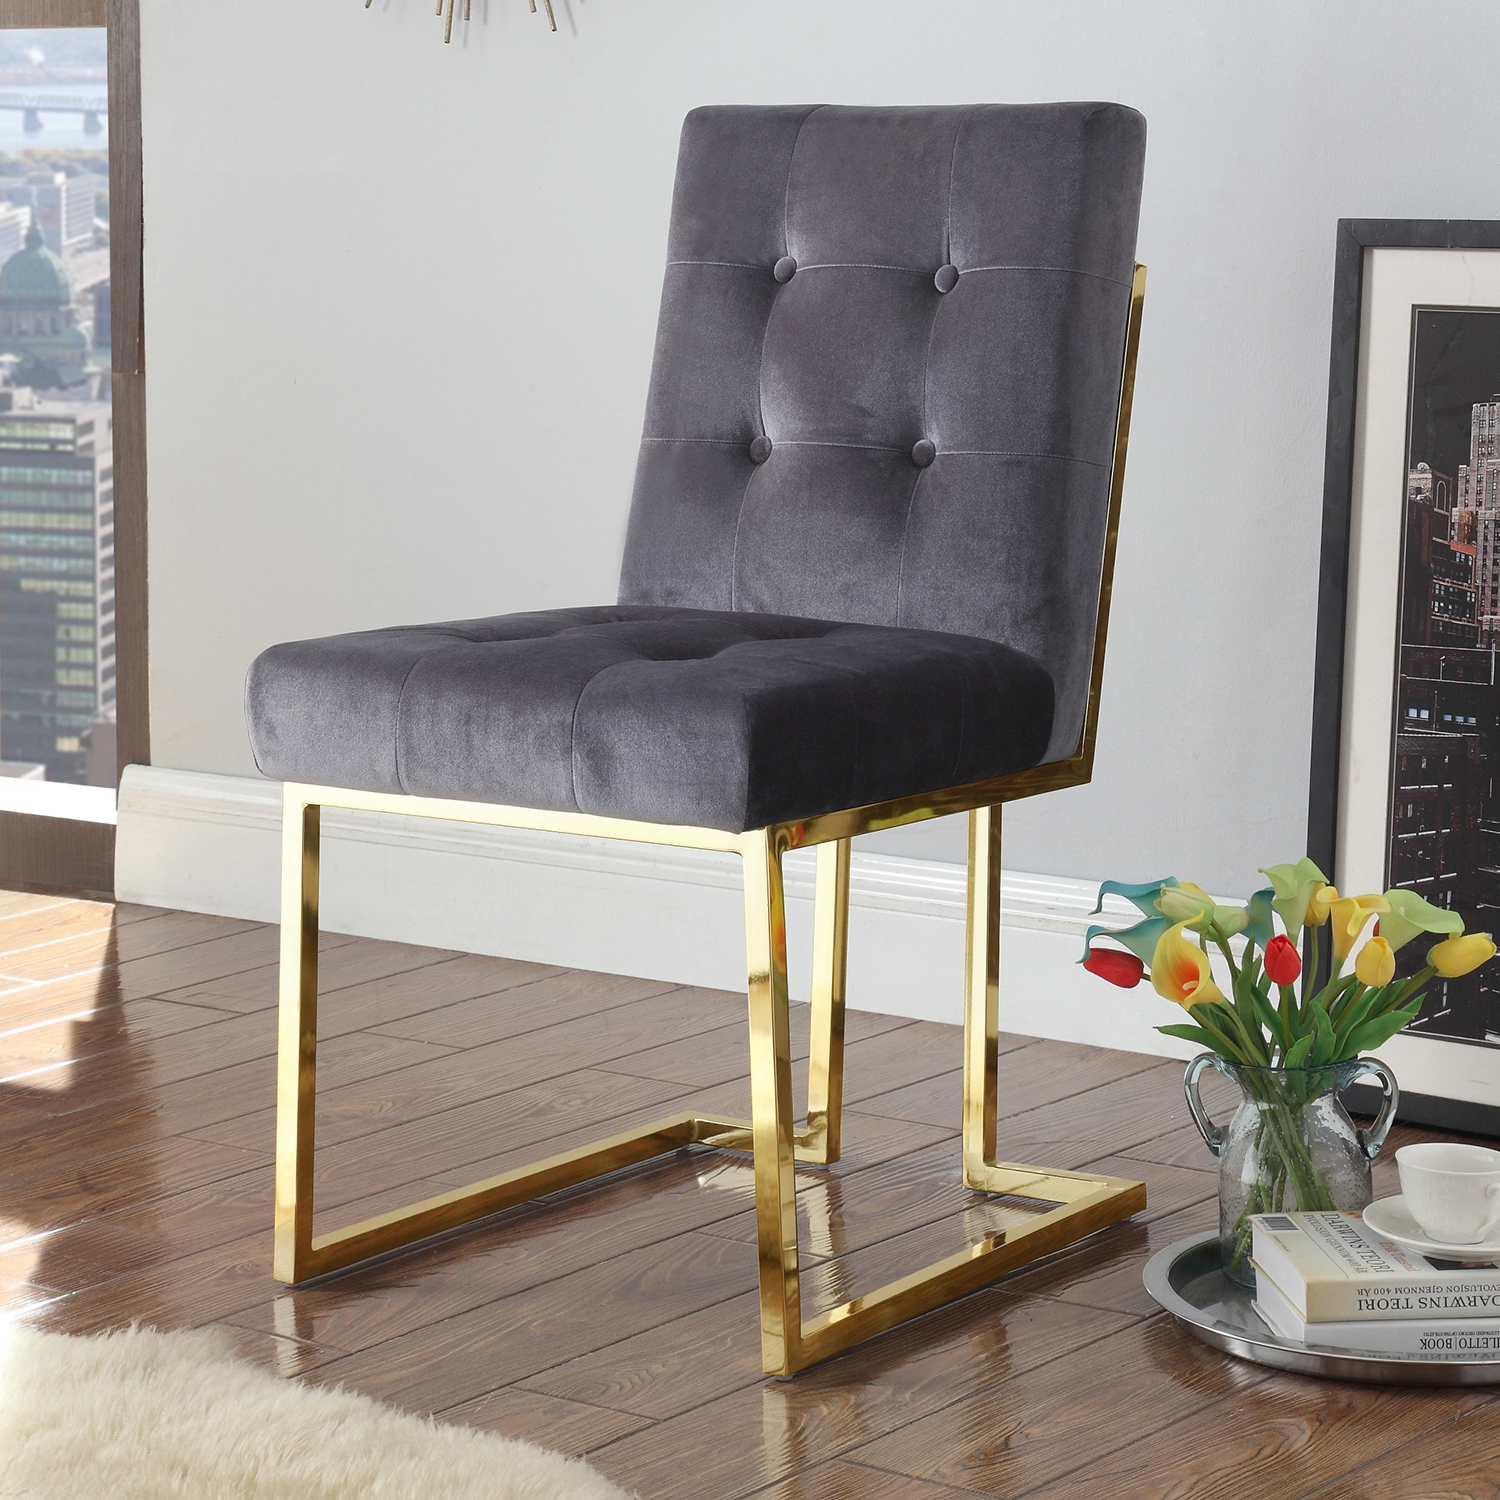 Liam Dining Chair In Tufted Grey Velvet On Brass Frame Set Of 2 By Chic Home